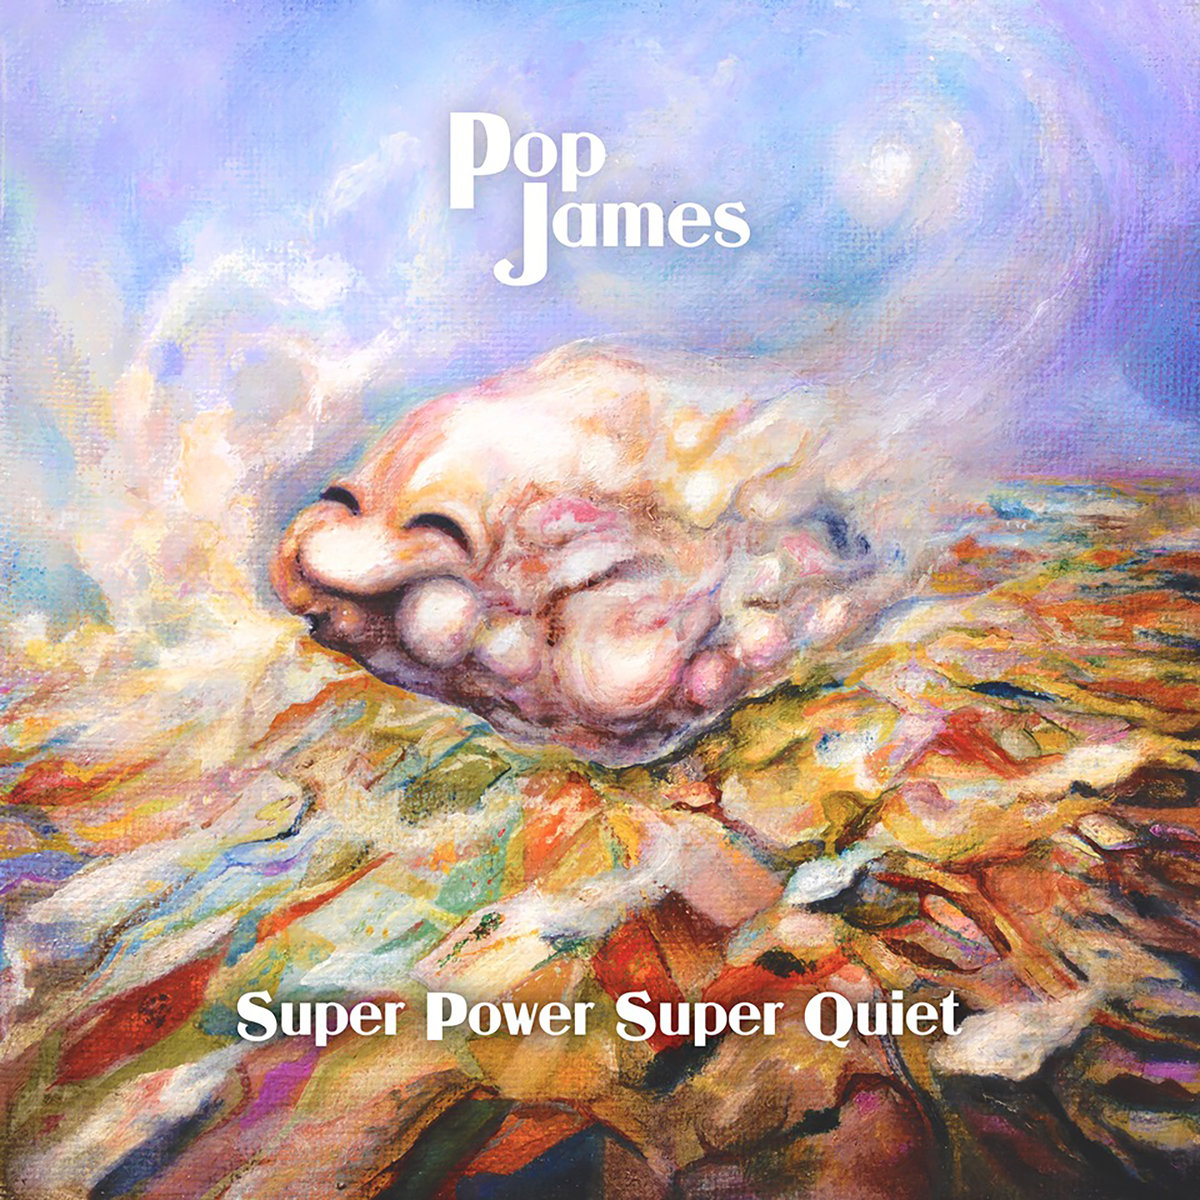 pop-james-super-power-super-quiet